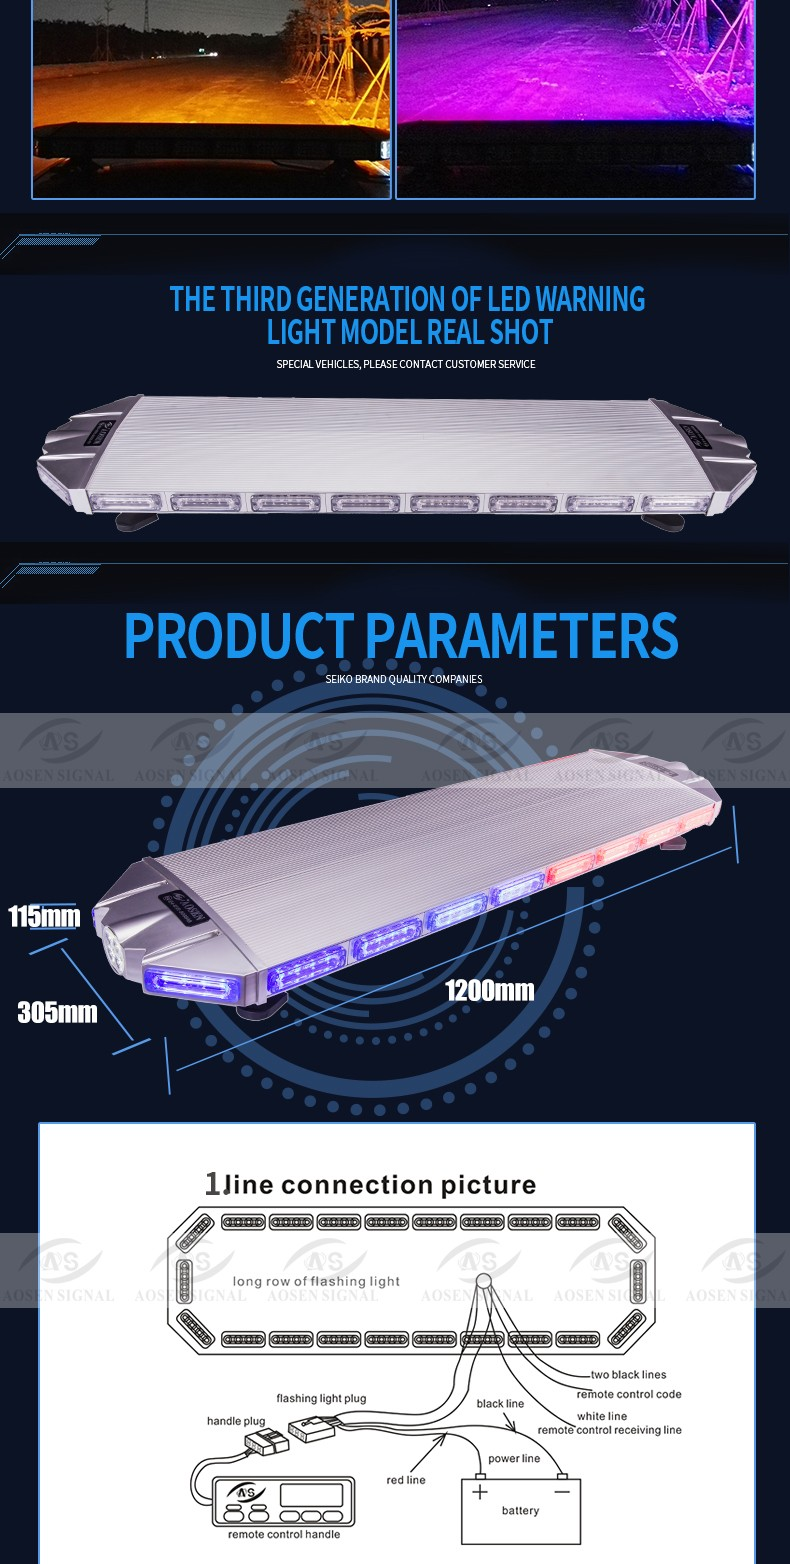 Warranty 5 year Newest Super Thin Led lightbar for police TBD-7E925 with trade assurance